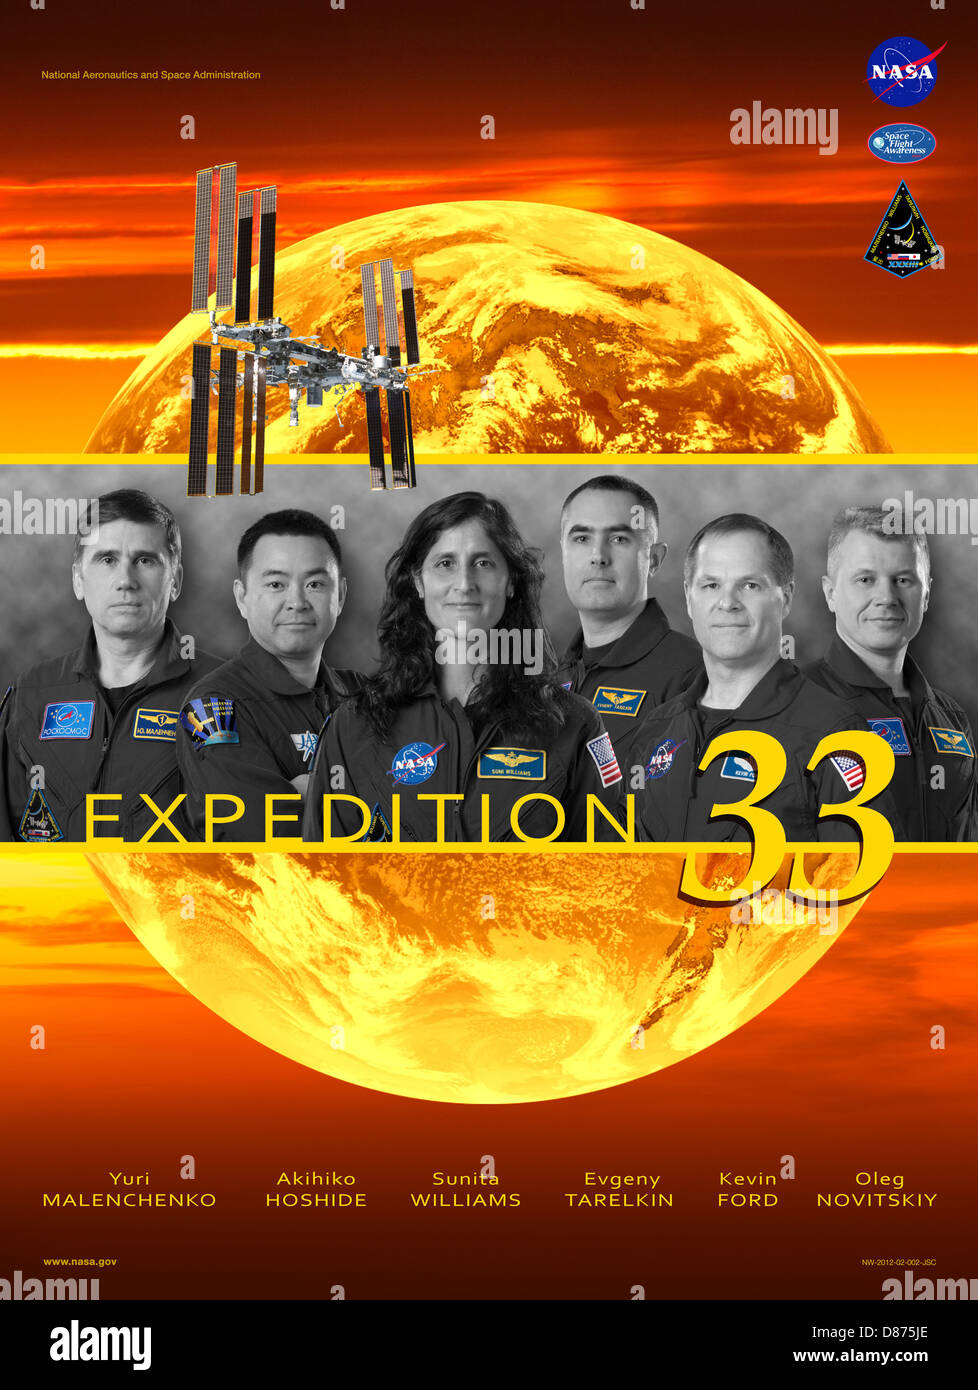 Expedition 33 crew poster.jpg - Stock Image